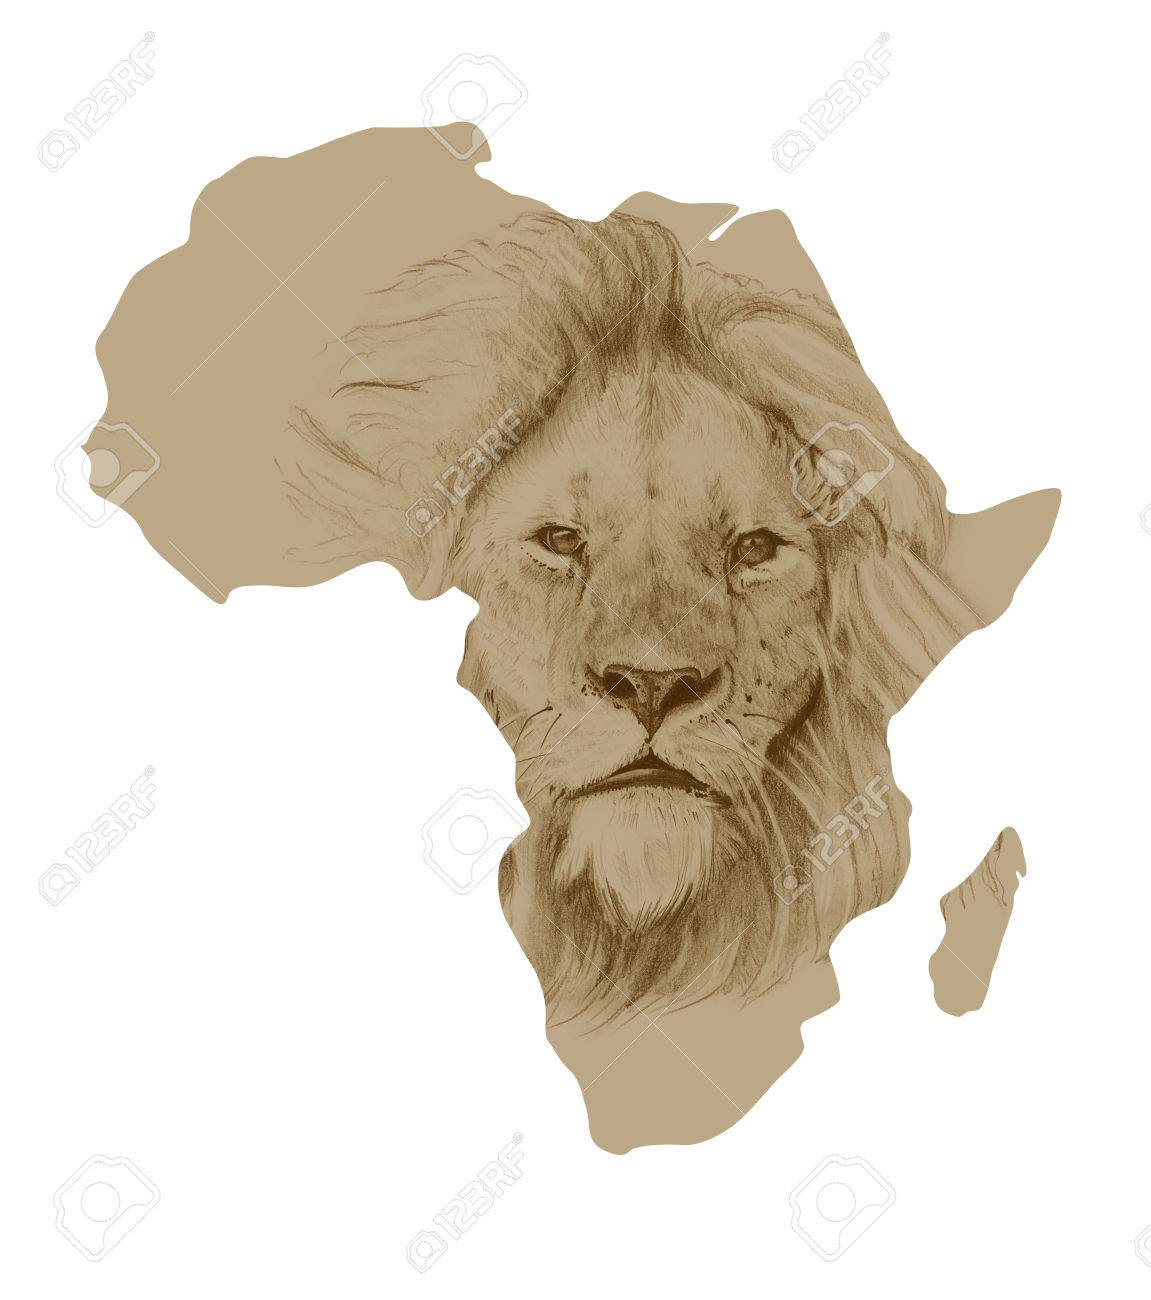 Map Of Africa With Pictures Of Drawn Lion Stock Photo, Picture And